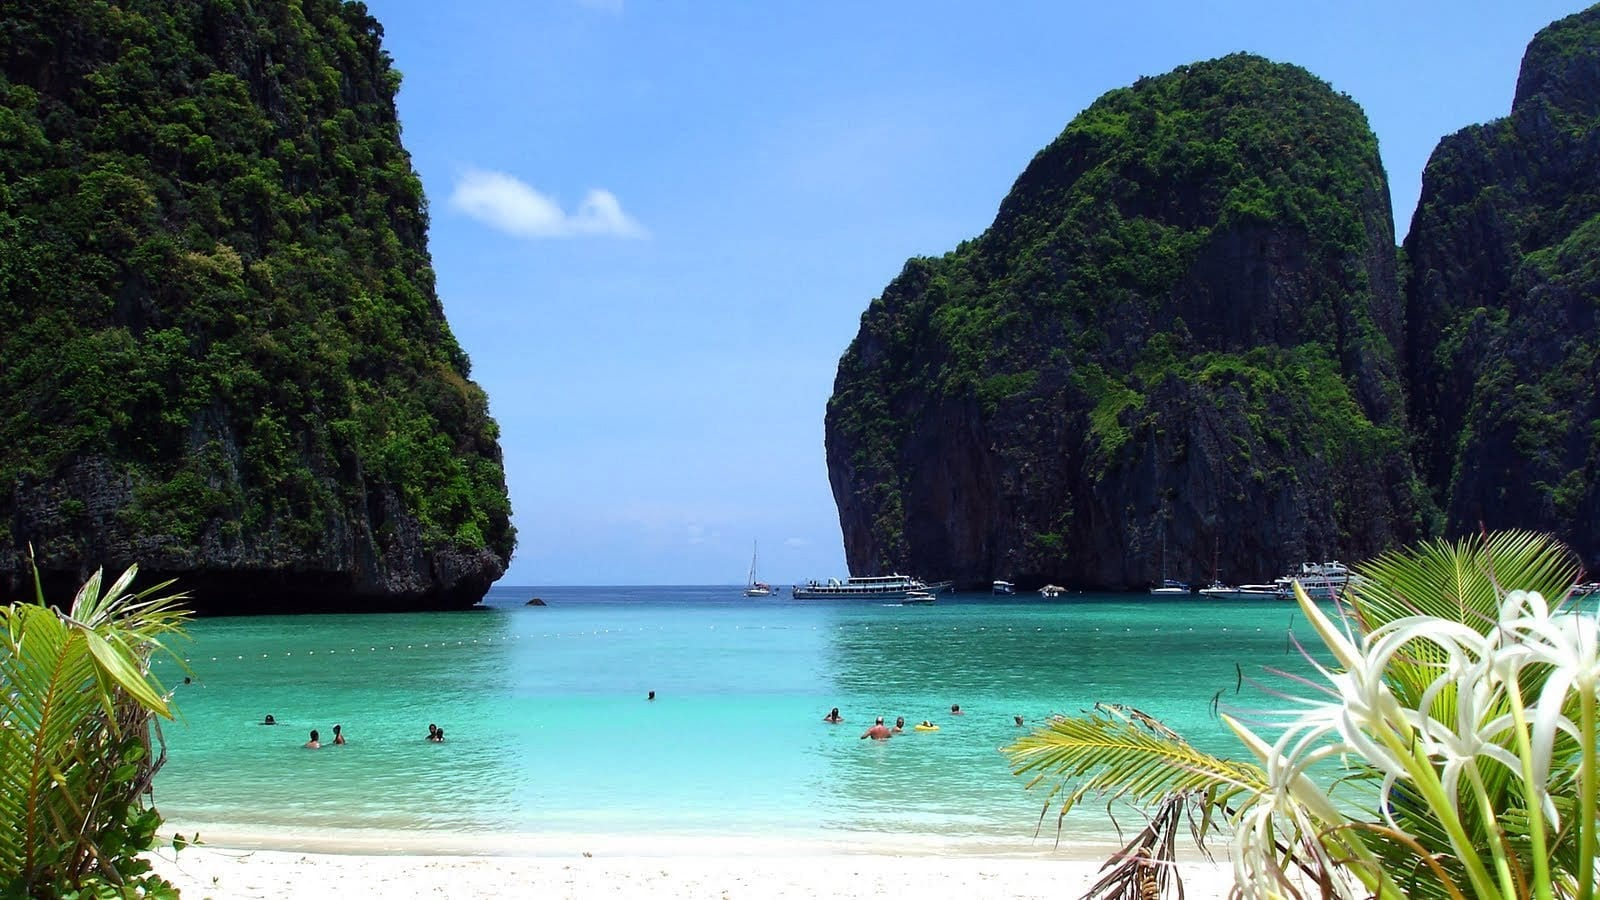 Thailand 10 Days Holiday Travel and Tour Packages